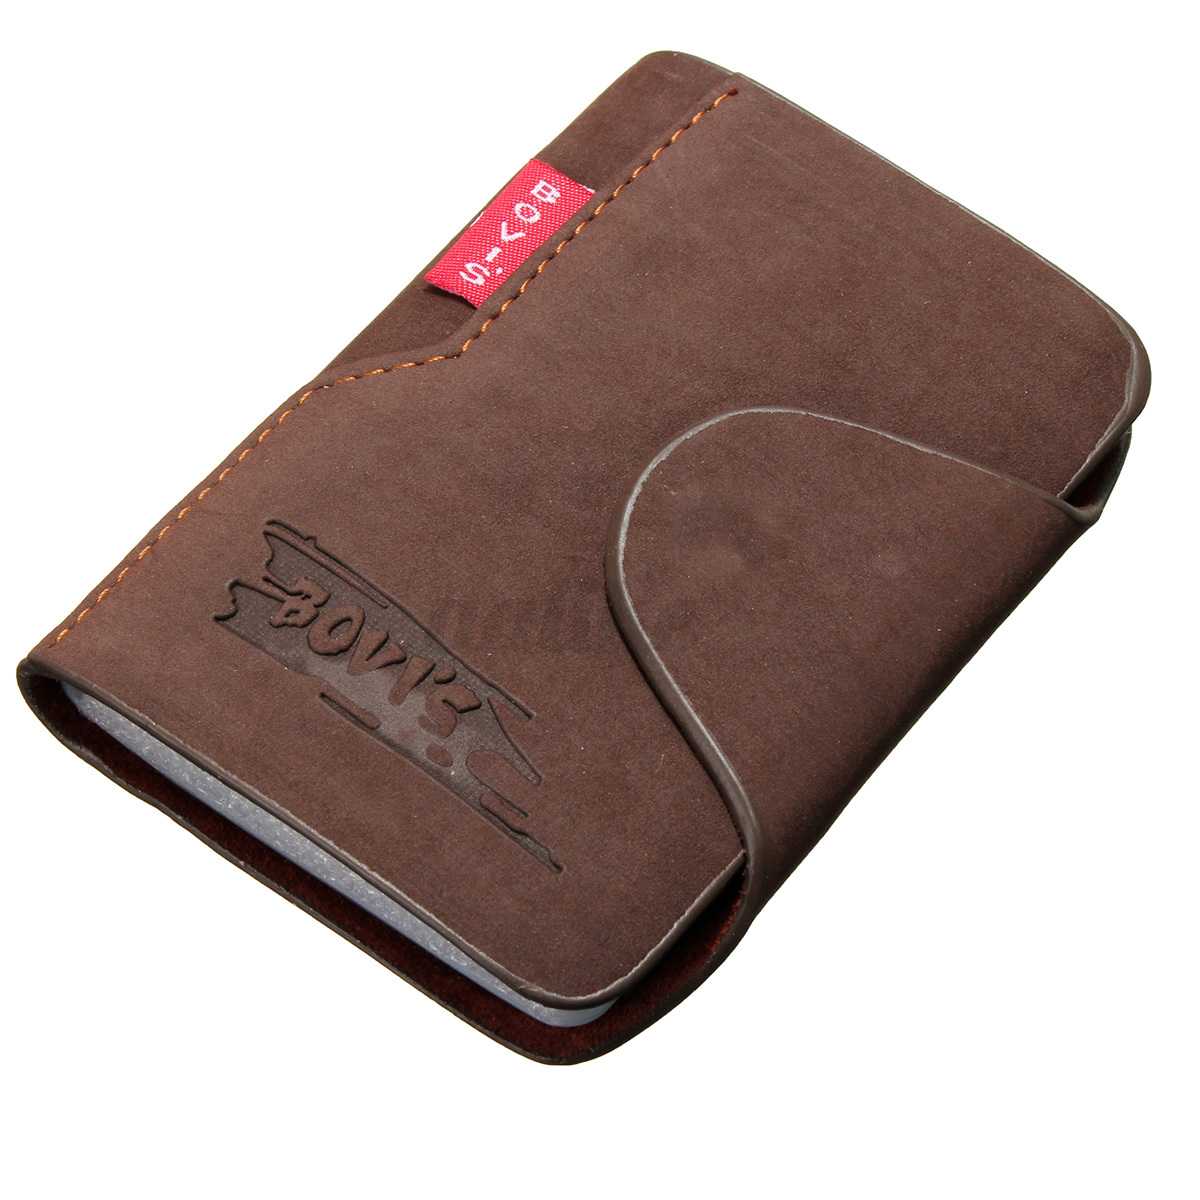 Mens-Luxury-Soft-Leather-Business-ID-Credit-Card-Holder-Wallet-Purse-20-Slots